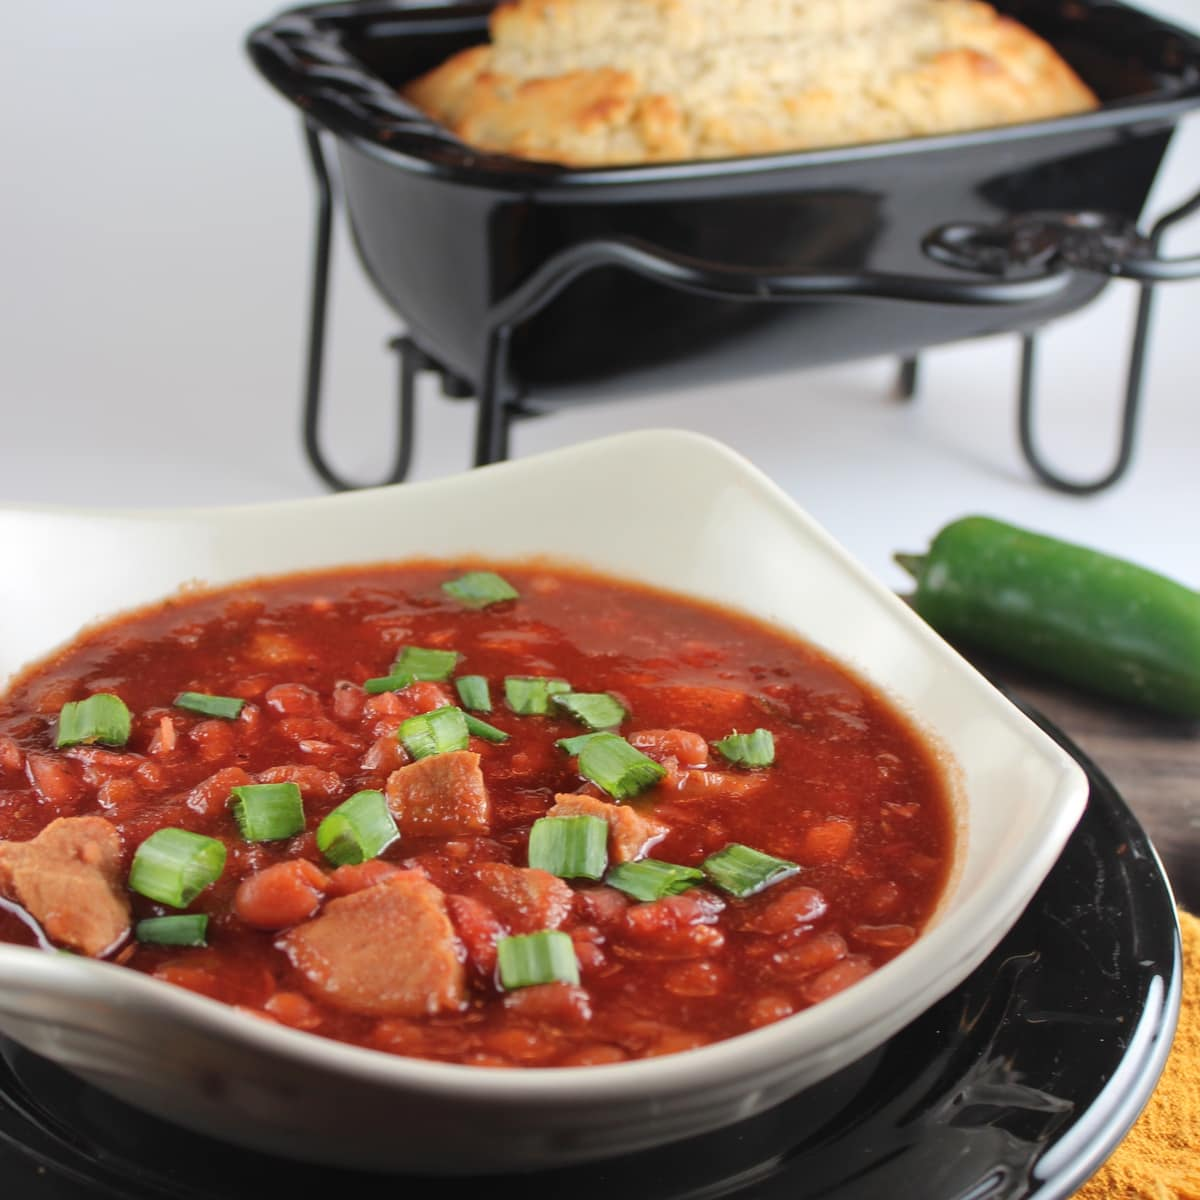 pork chops are added to pork and beans in this sweet and spicy chili ...